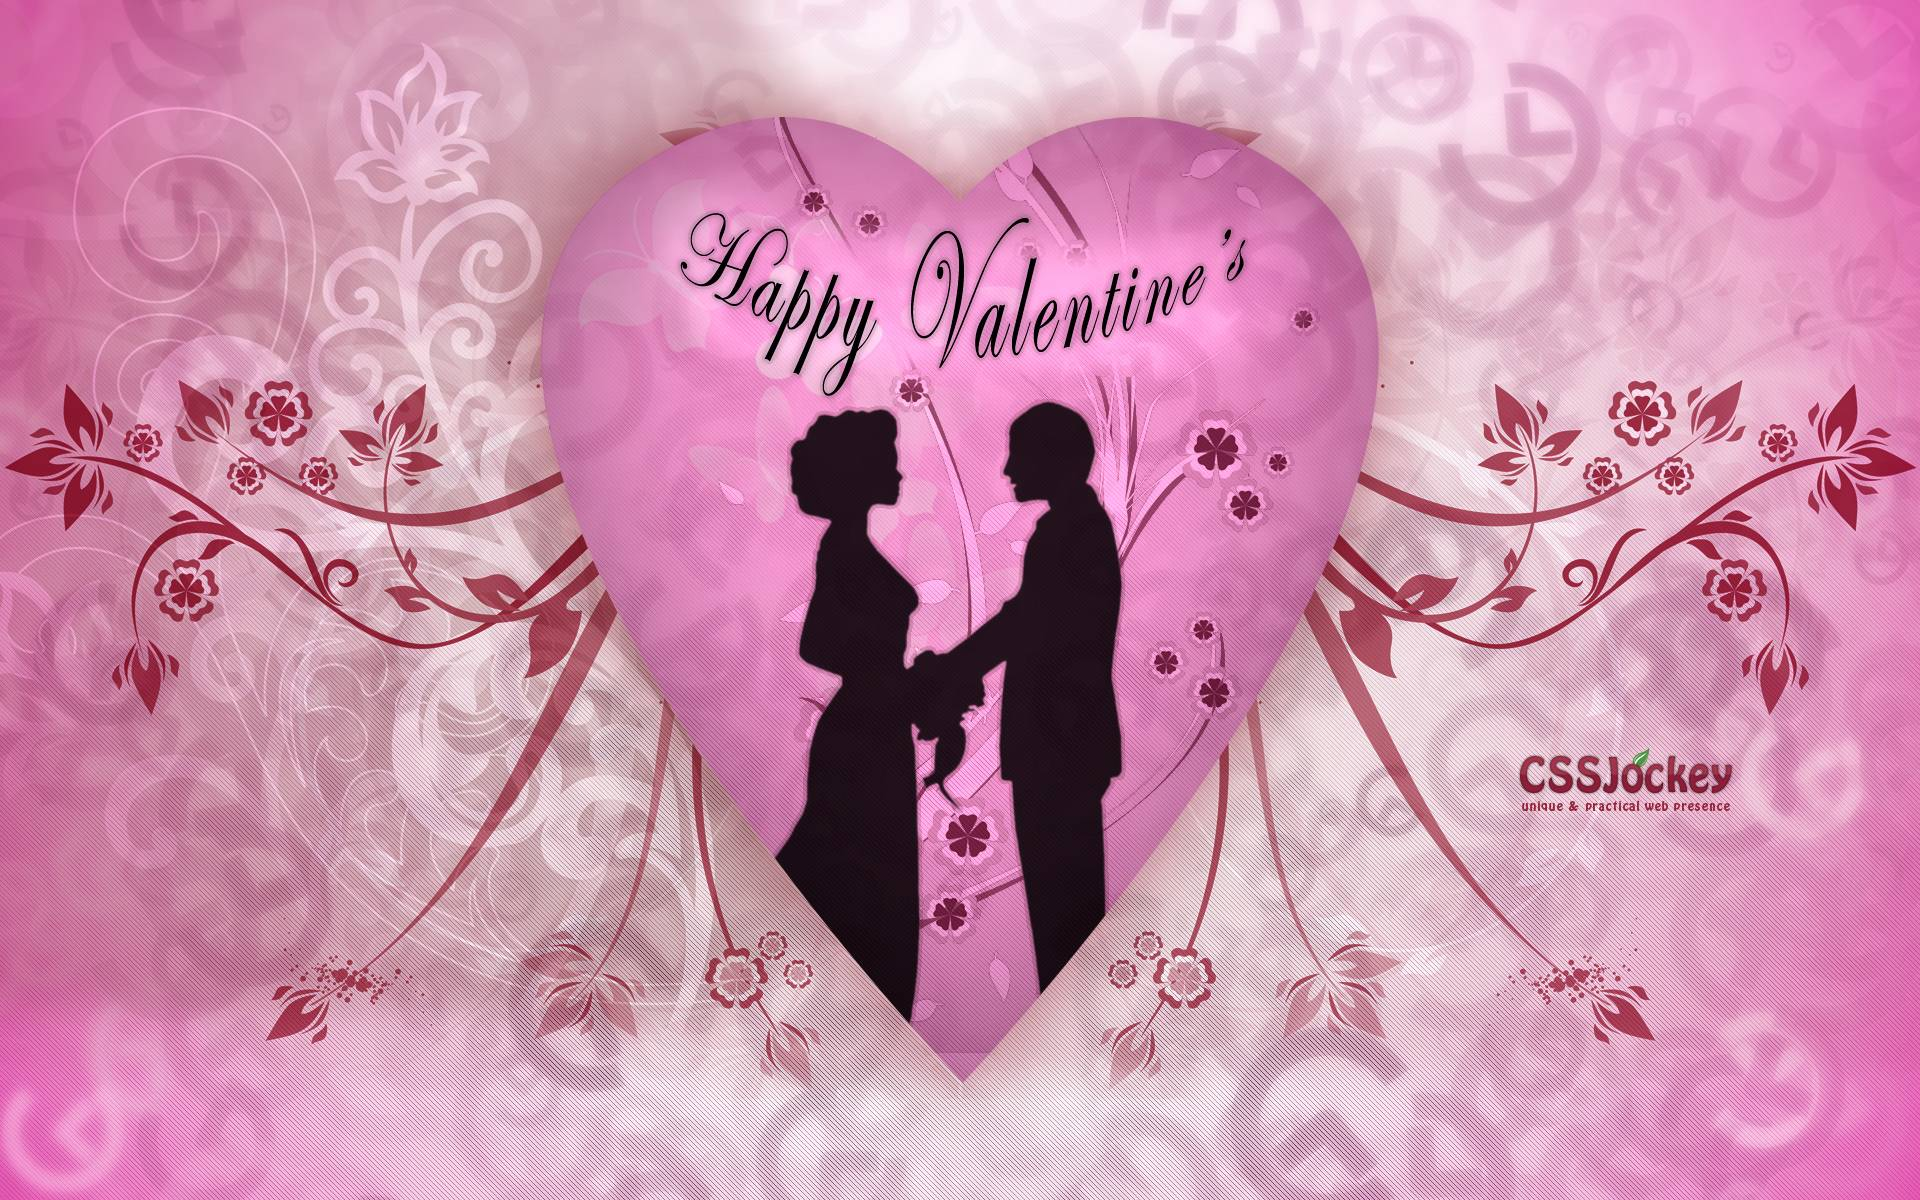 Happy Valentines Day Wallpapers Free - Wallpaper Cave